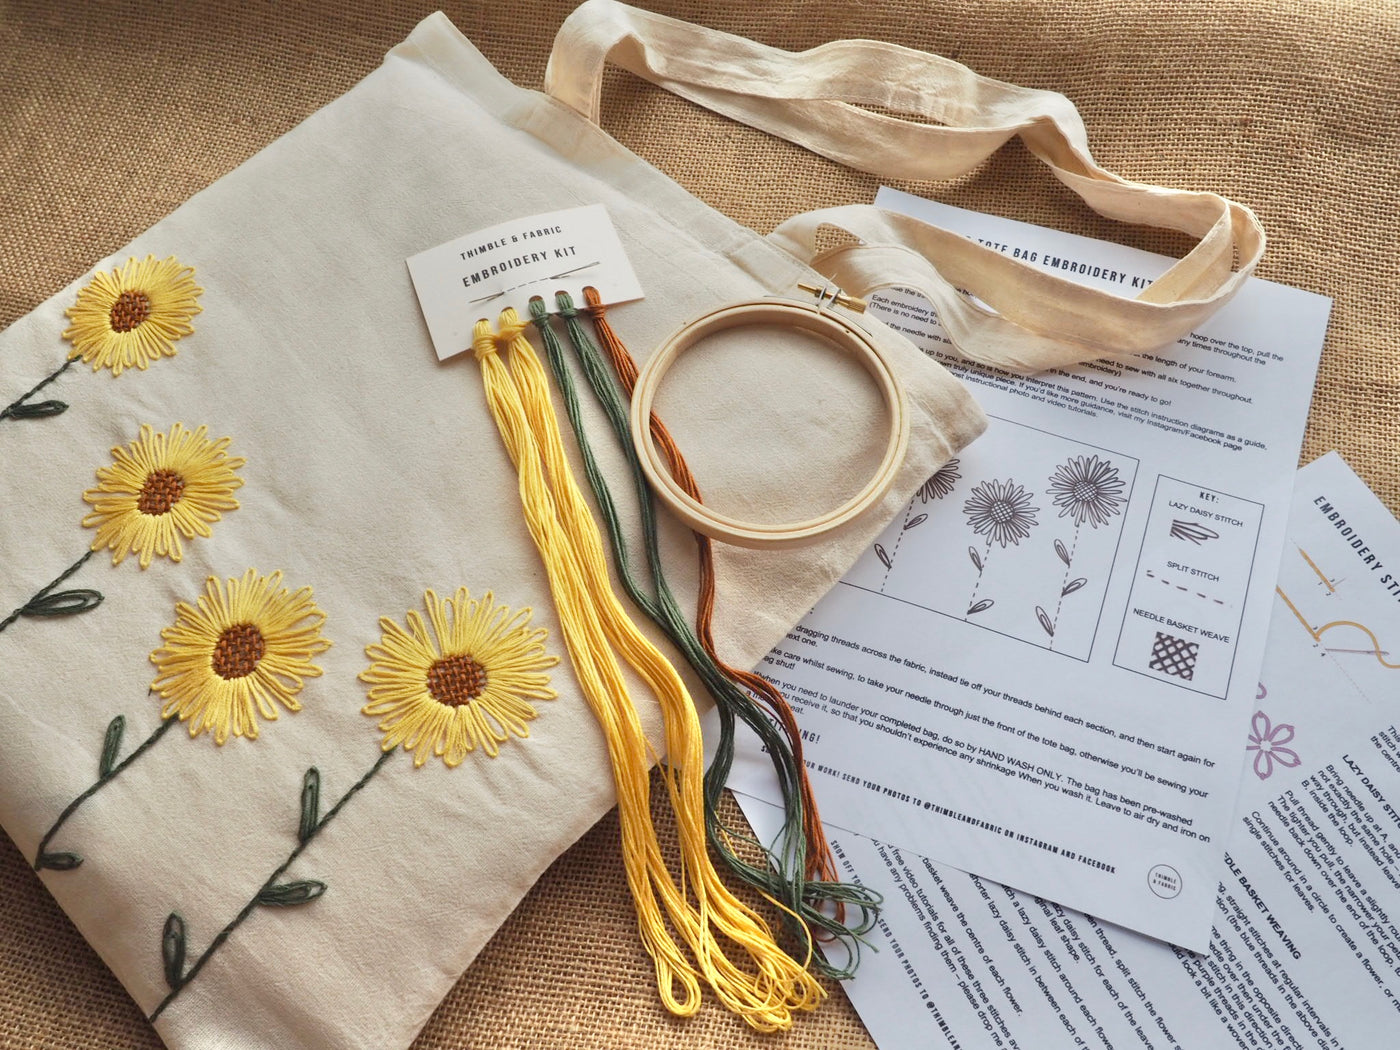 Sunflower Tote Bag Embroidery Kit